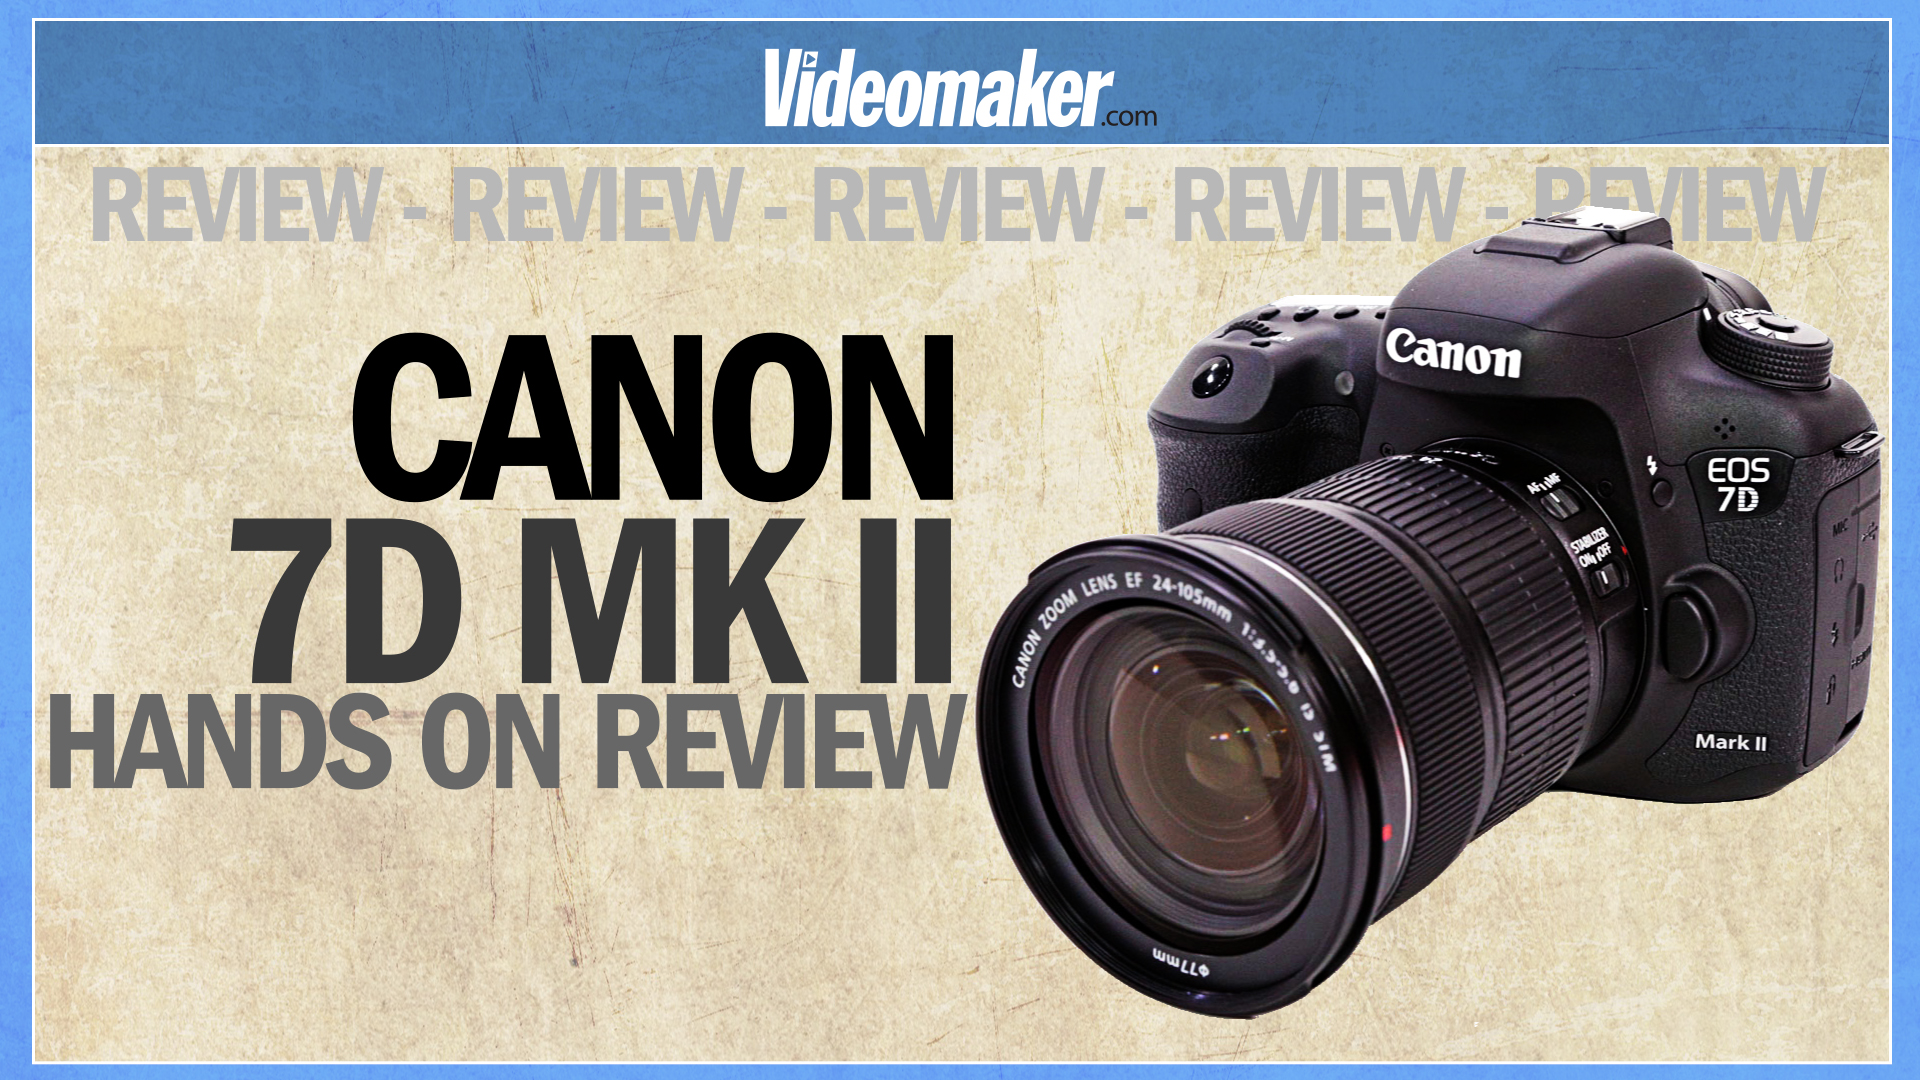 Canon 7D Mark II - Hands on Review - Videomaker